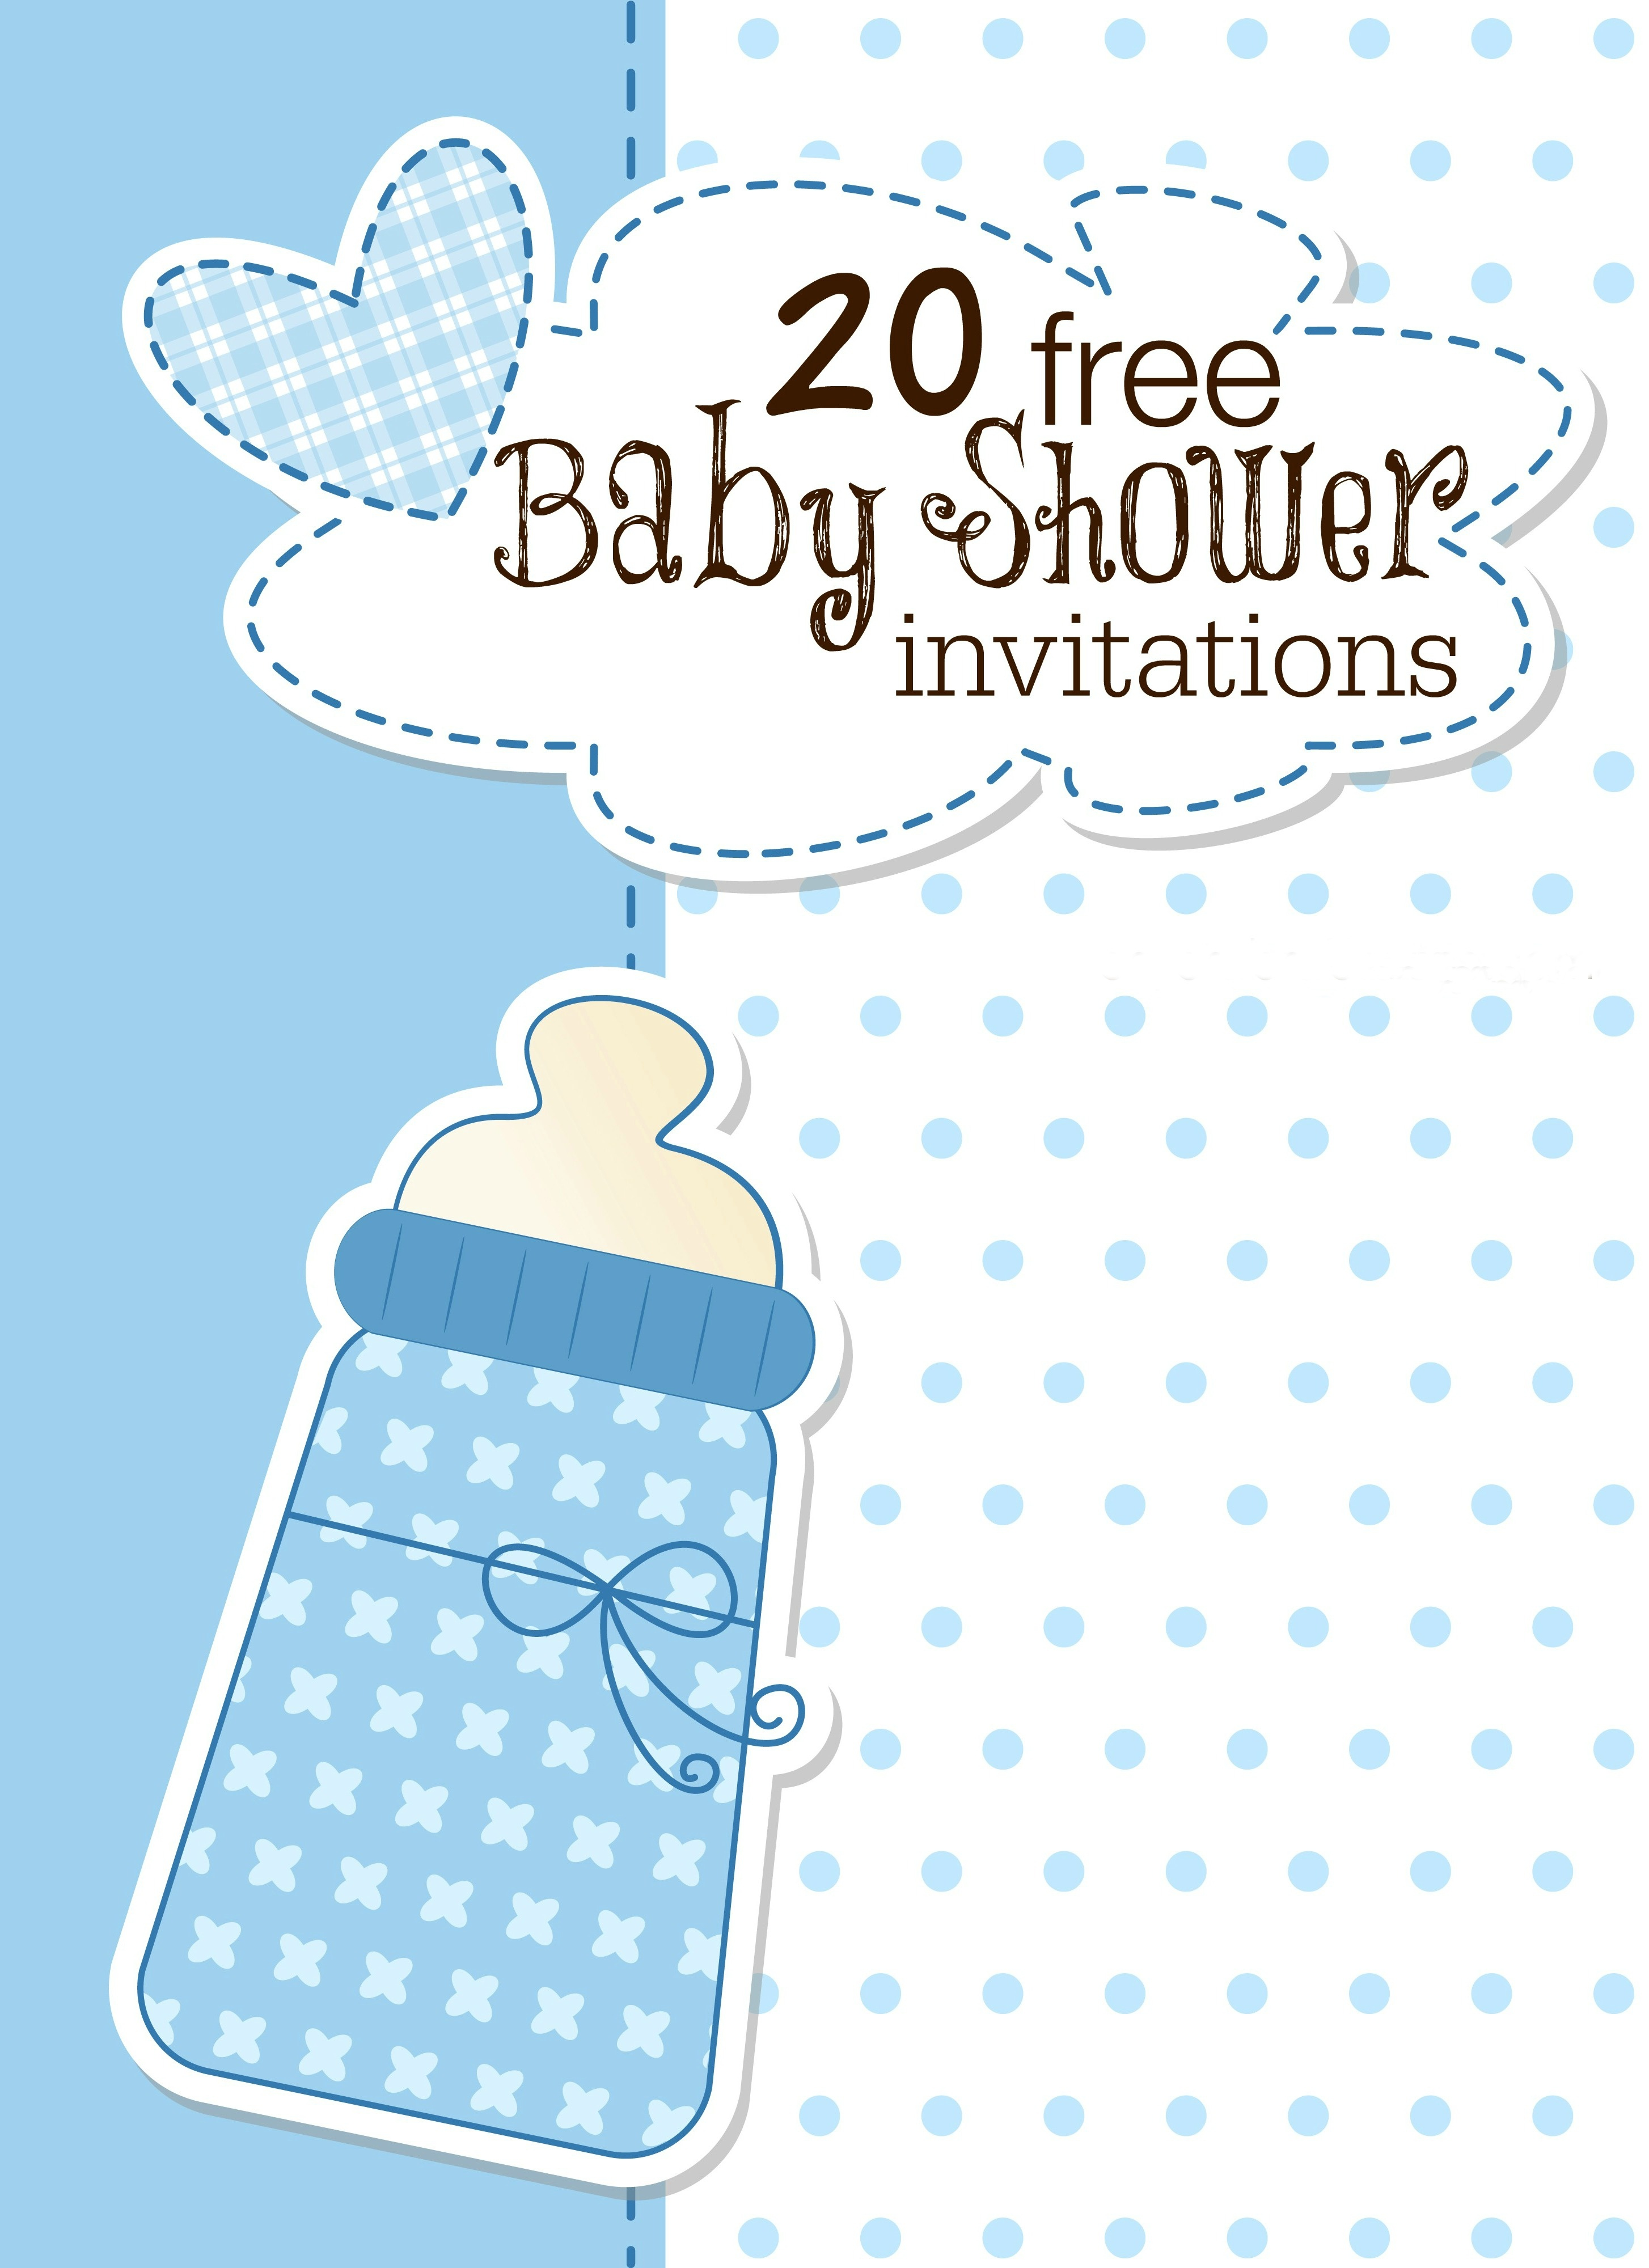 Printable Baby Shower Invitations - Free Printable Zebra Baby Shower Invitations